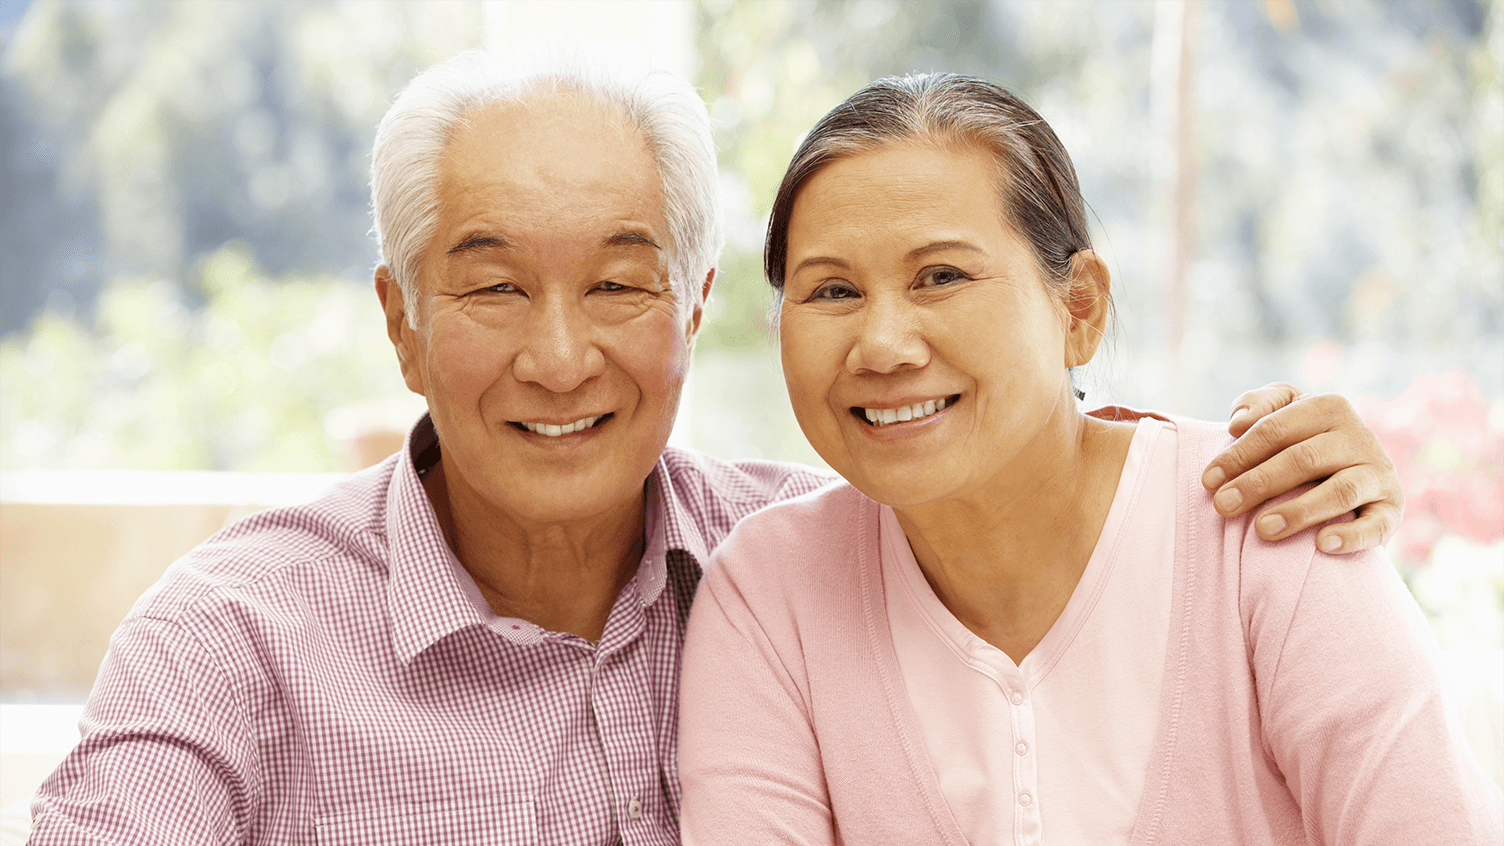 Fall Prevention: Protect Your Loved Ones